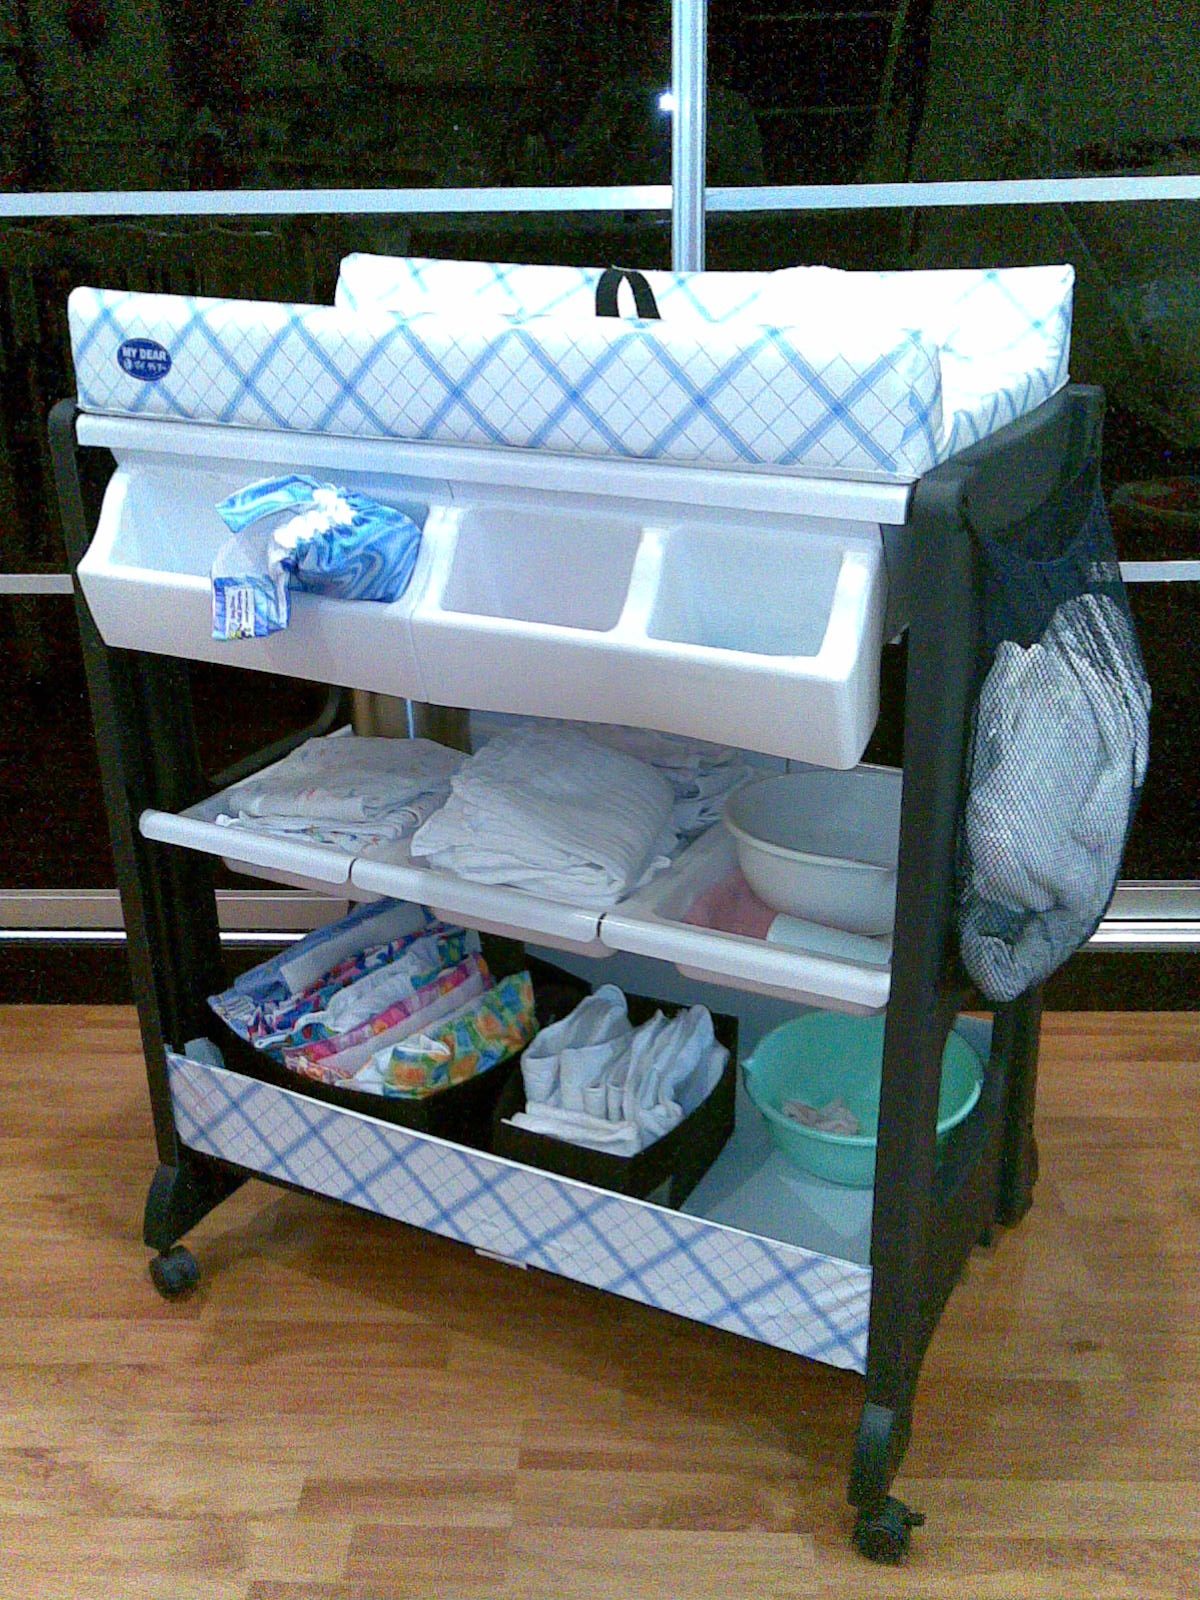 Attractive Bath And Change Table Review My Dear Changing Table With Bath Tub Mummy S  Reviews